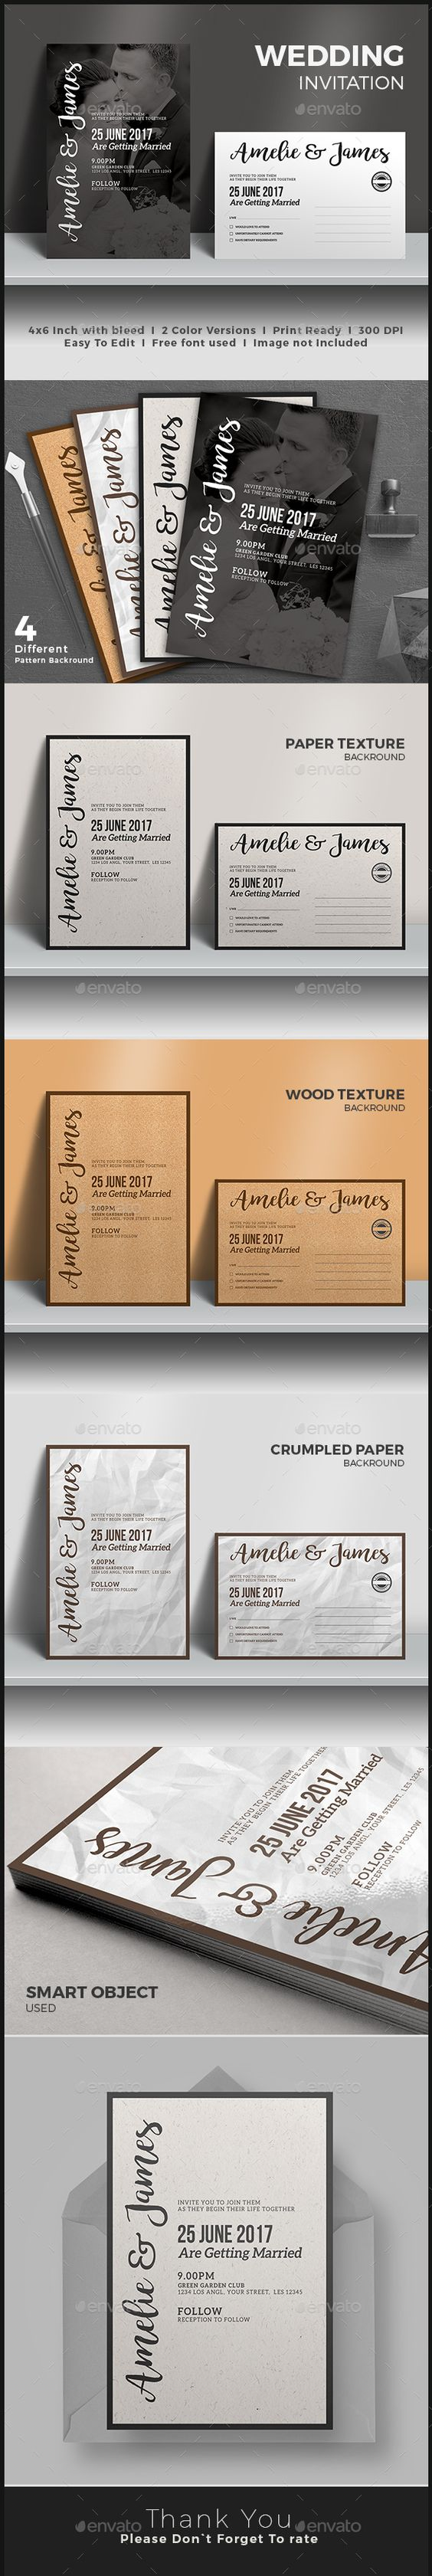 wedding invitation wedding invitations invitations and wedding wedding invitation psd template 10141 graphicriver net item wedding invitation 17118478 ref pxcr